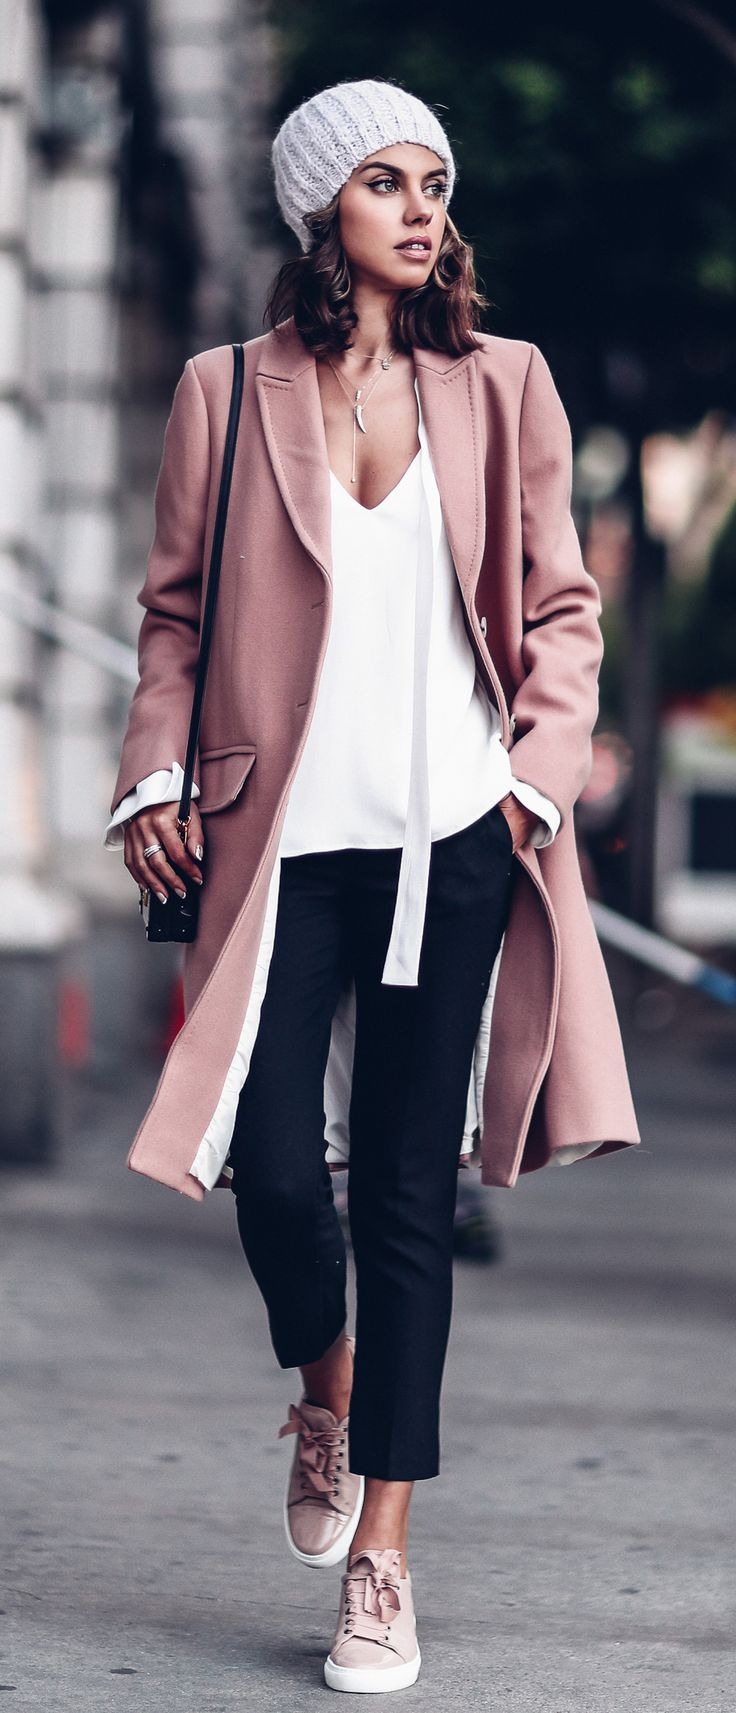 Style your trench coat but make it vegan! Visit www.jamesandco.boutique to find the best quality vegan outerwear. #VeganFashion